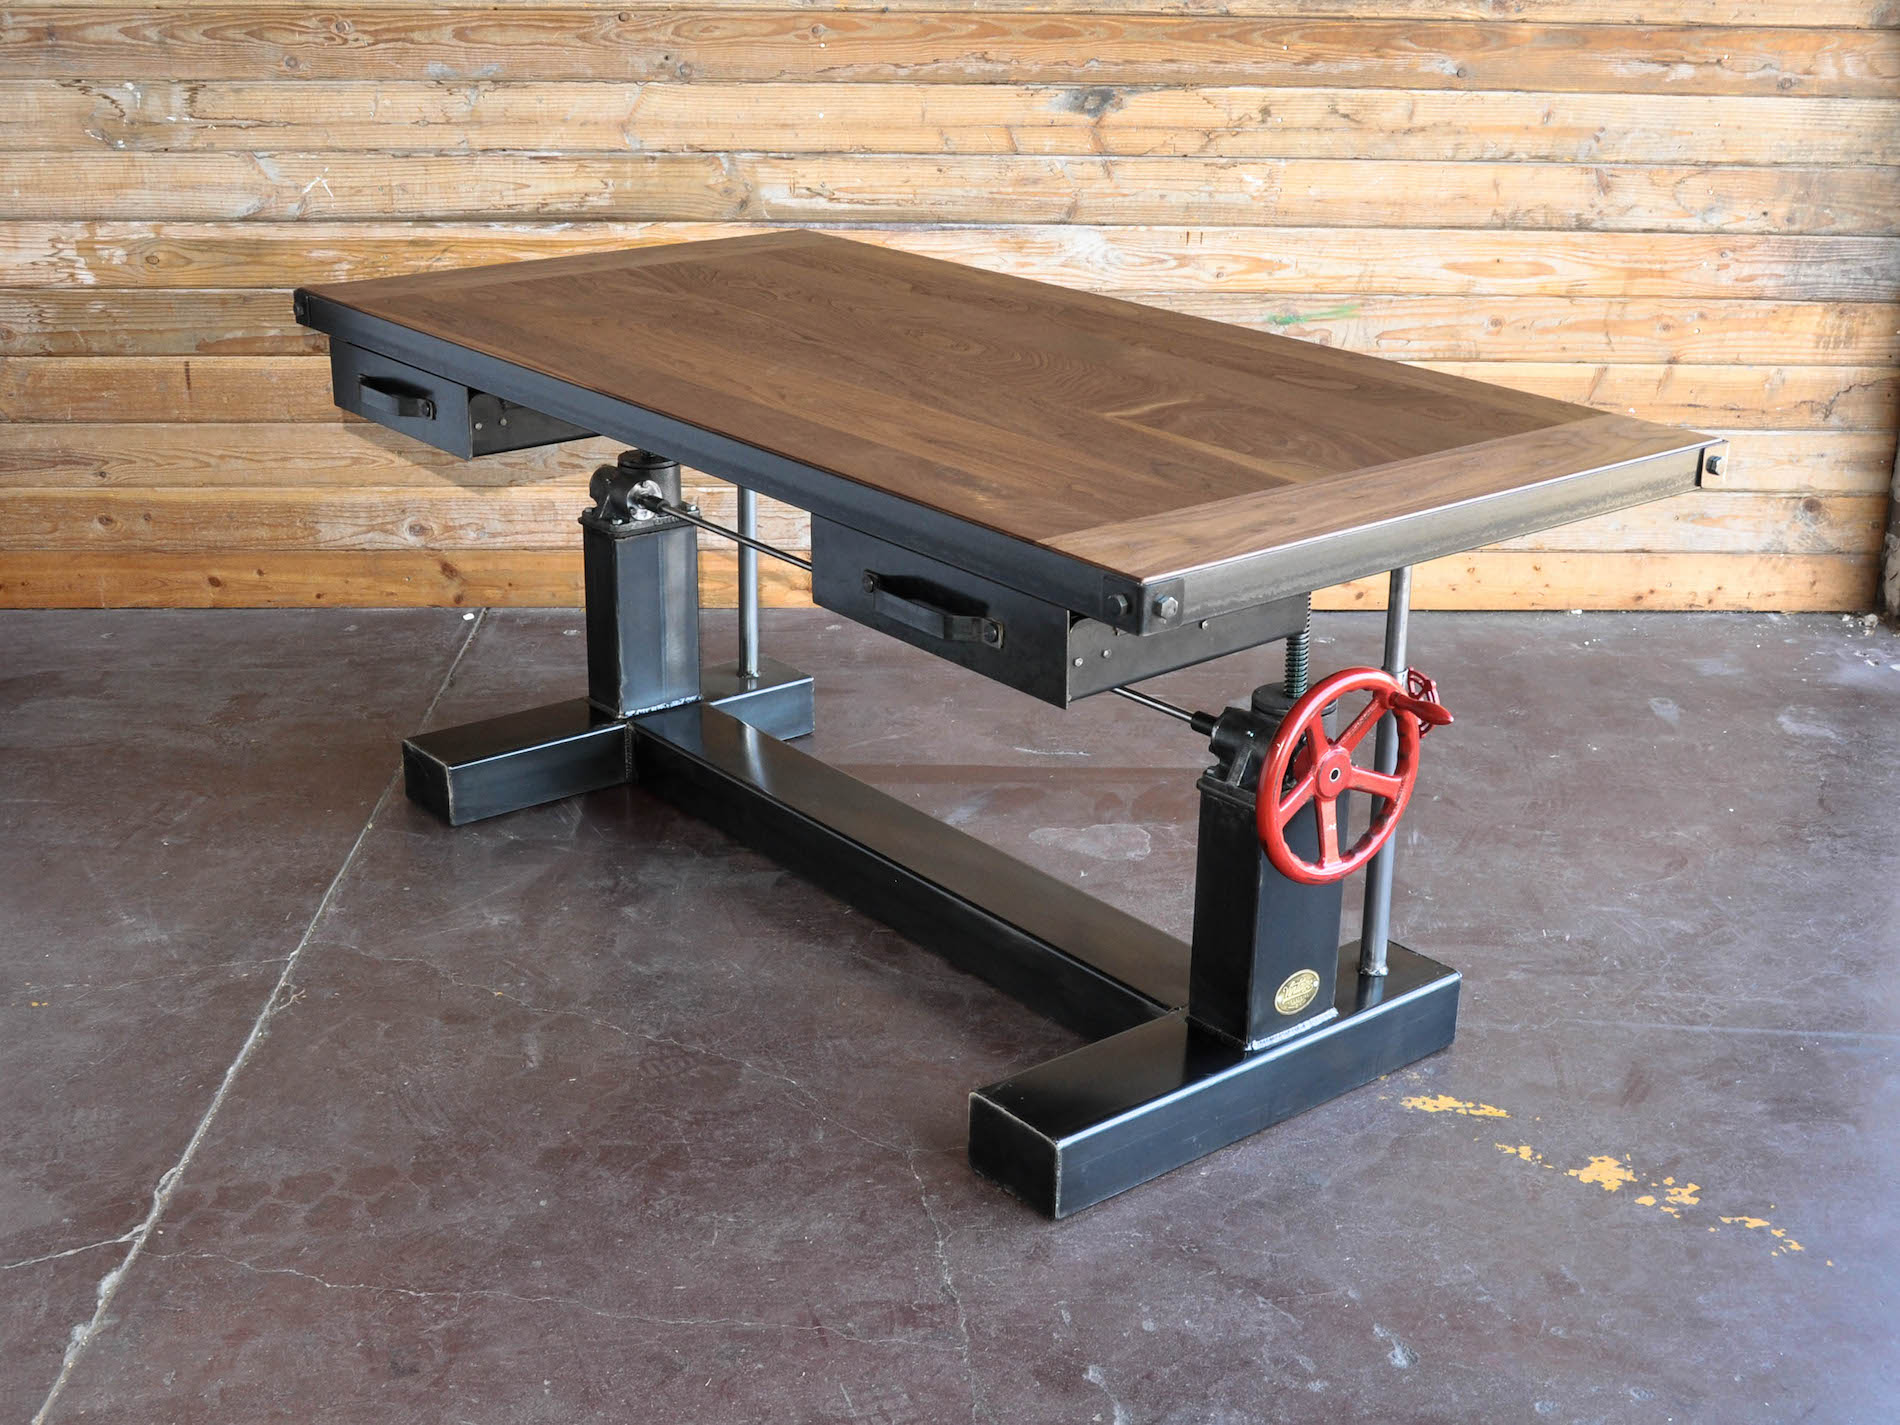 retro kitchen chairs for sale pub tables and target crank sit stand desk | vintage industrial furniture